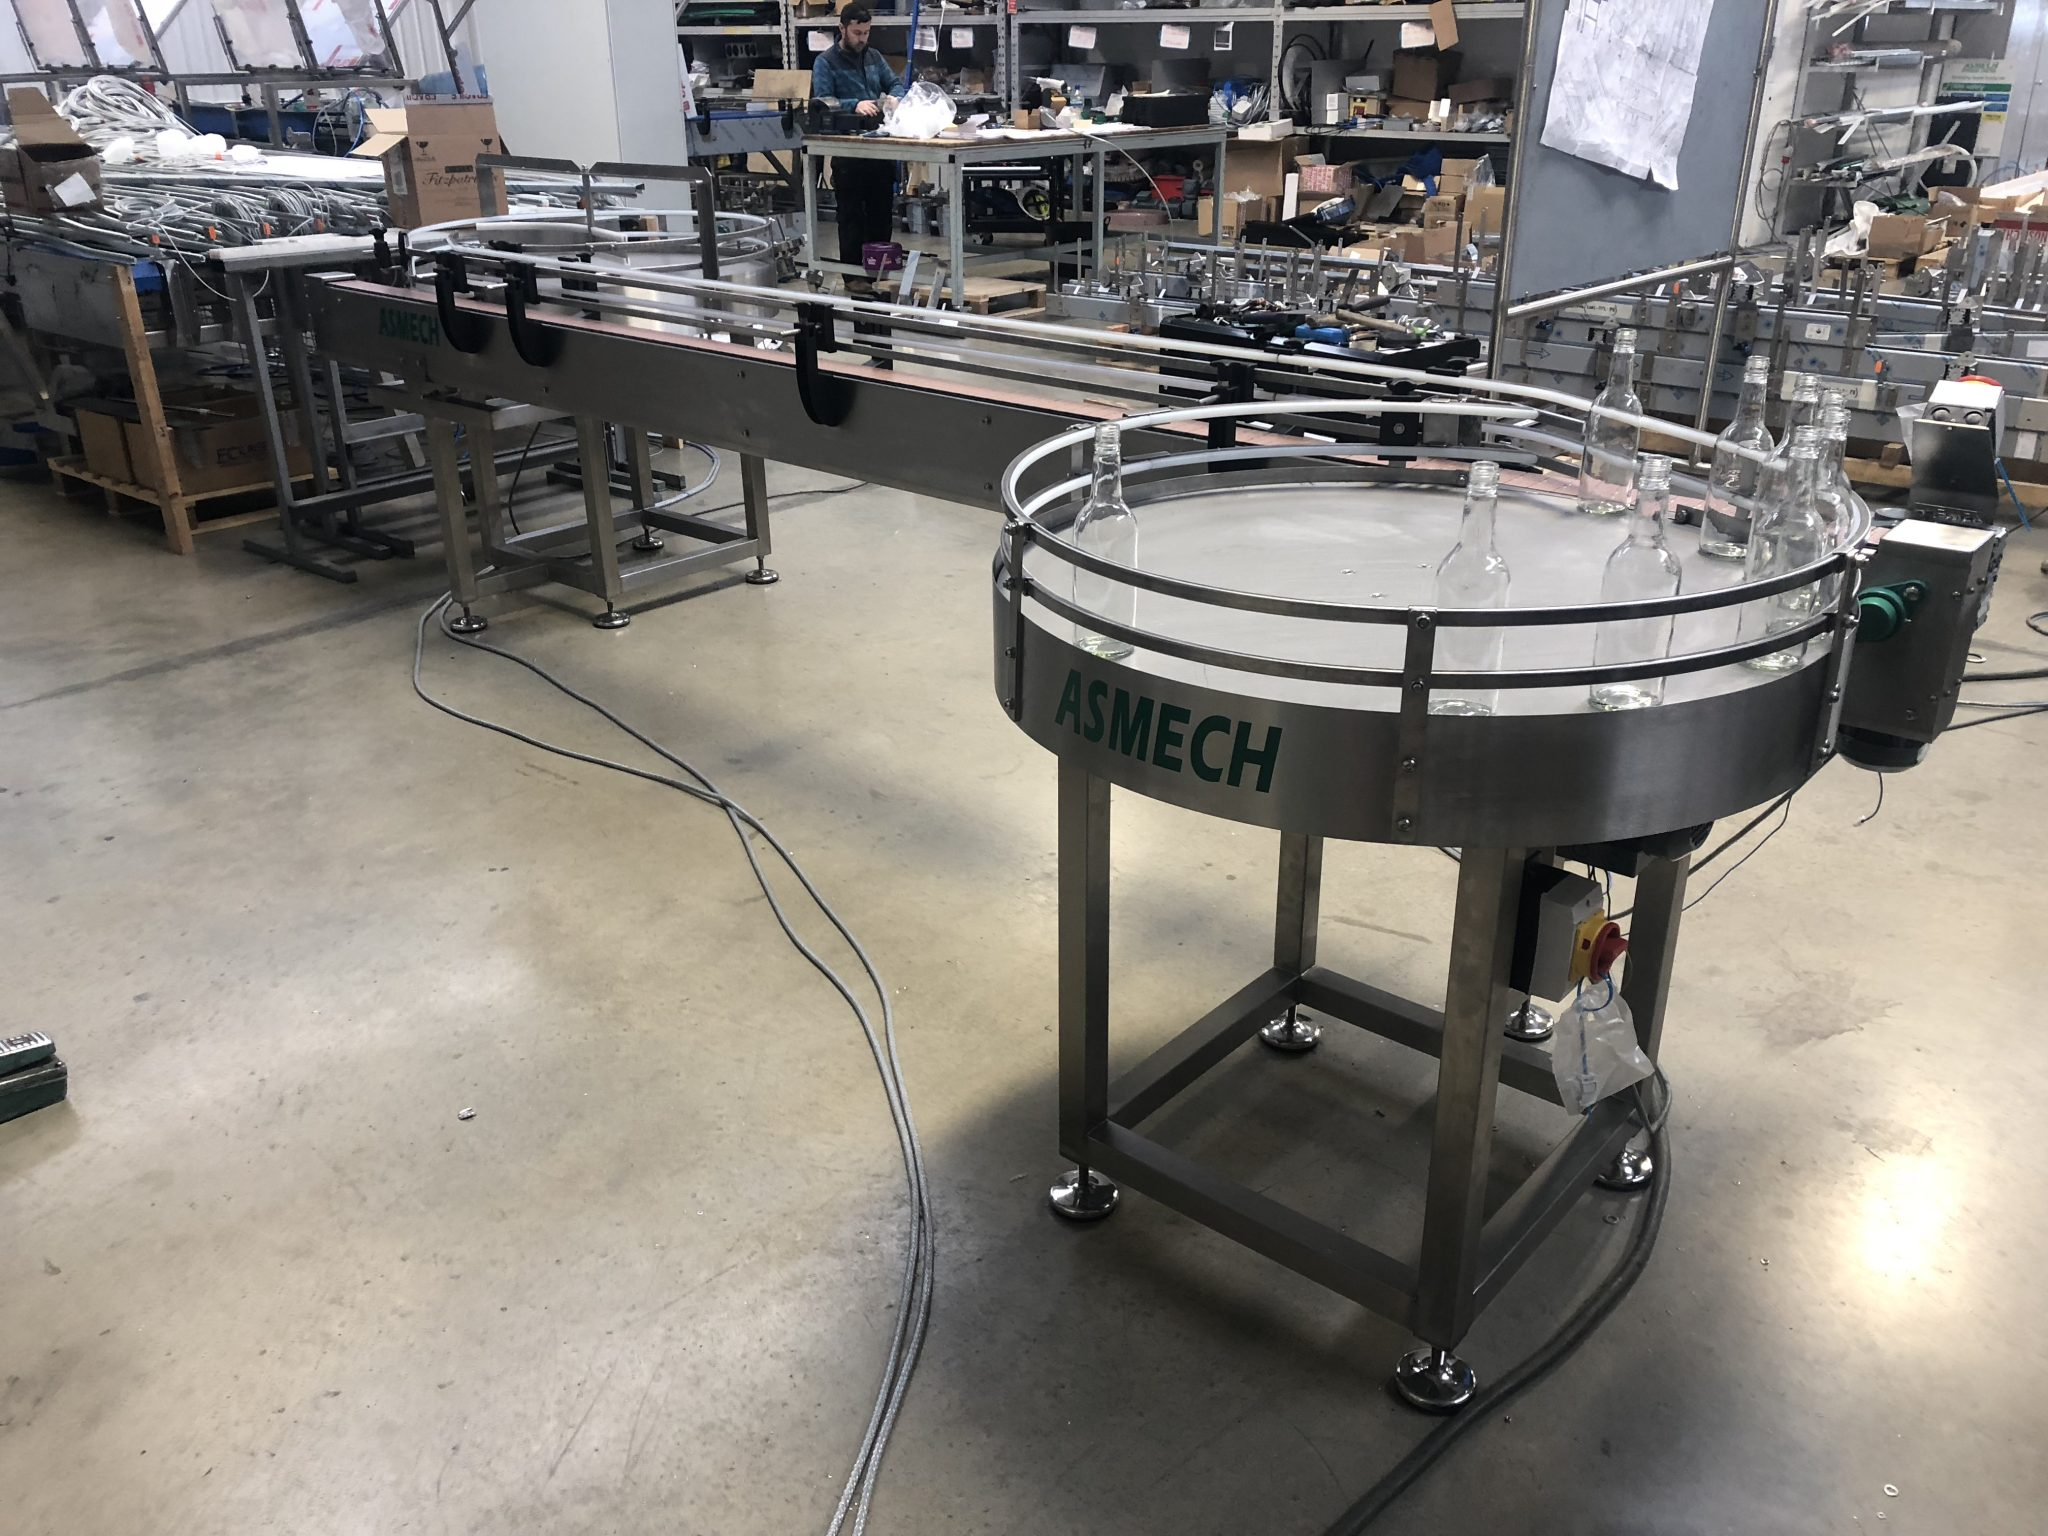 Rotary Table supplied by Asmech Systems